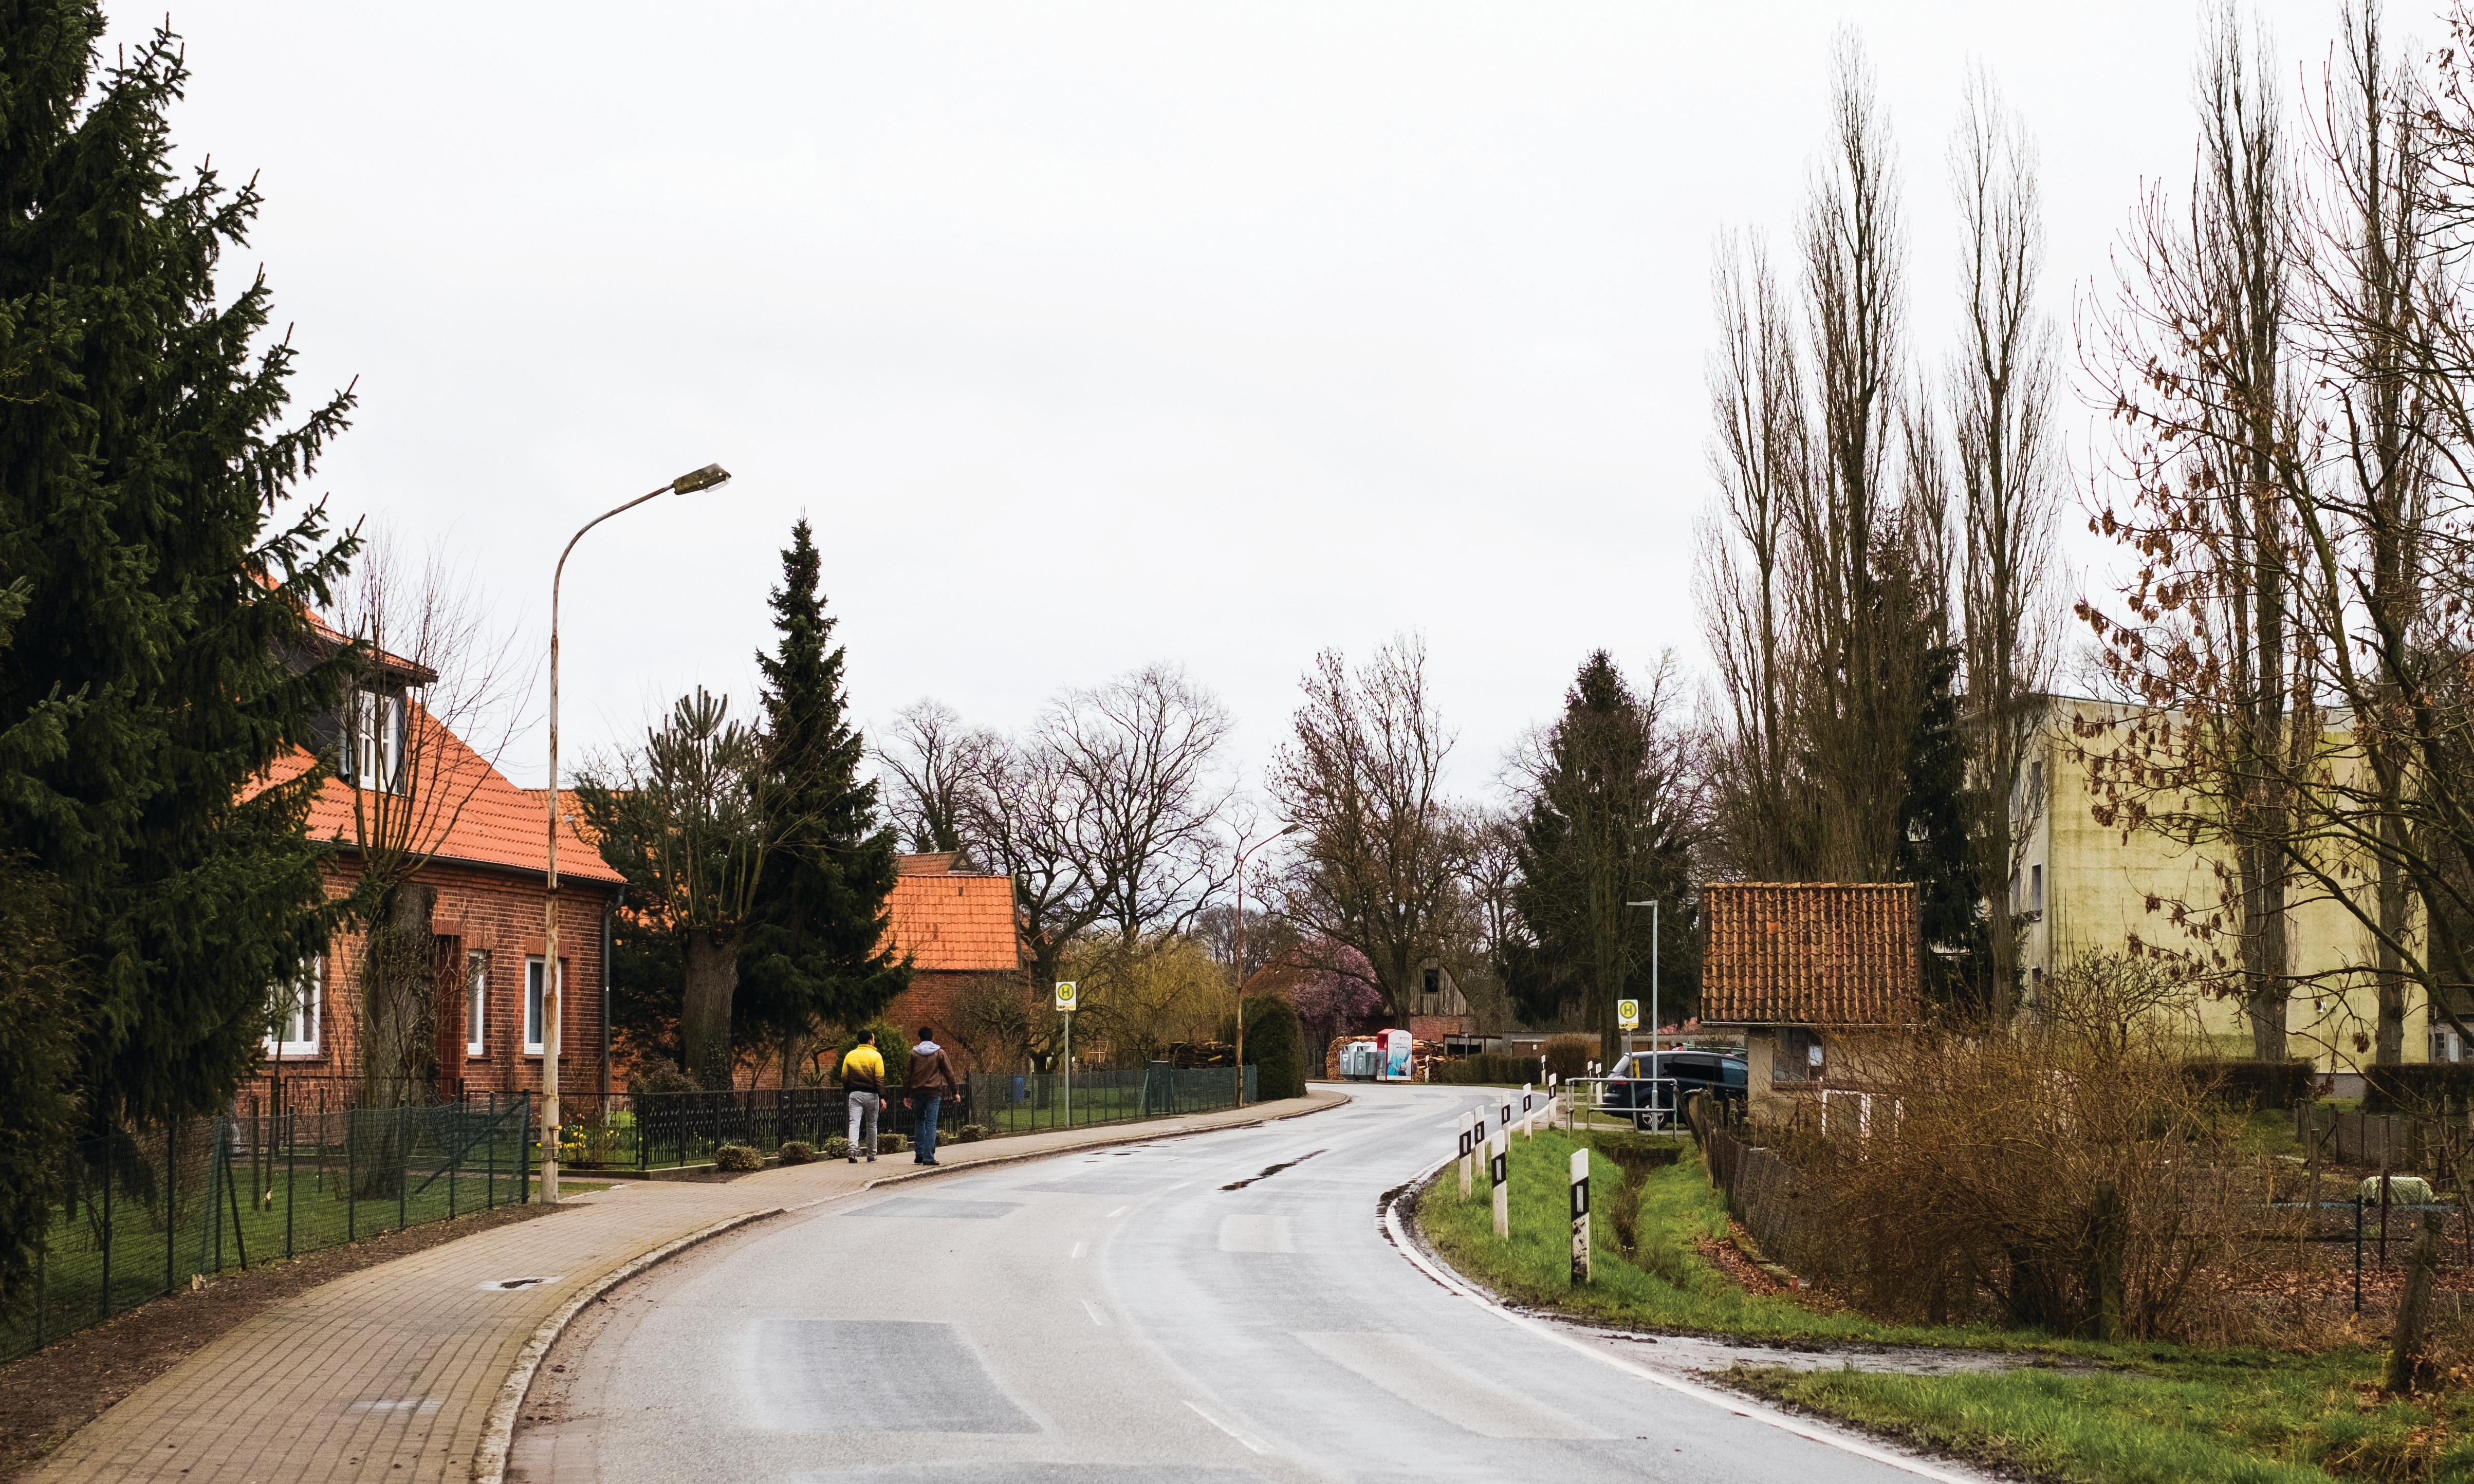 102 villagers, 750 refugees, one grand experiment